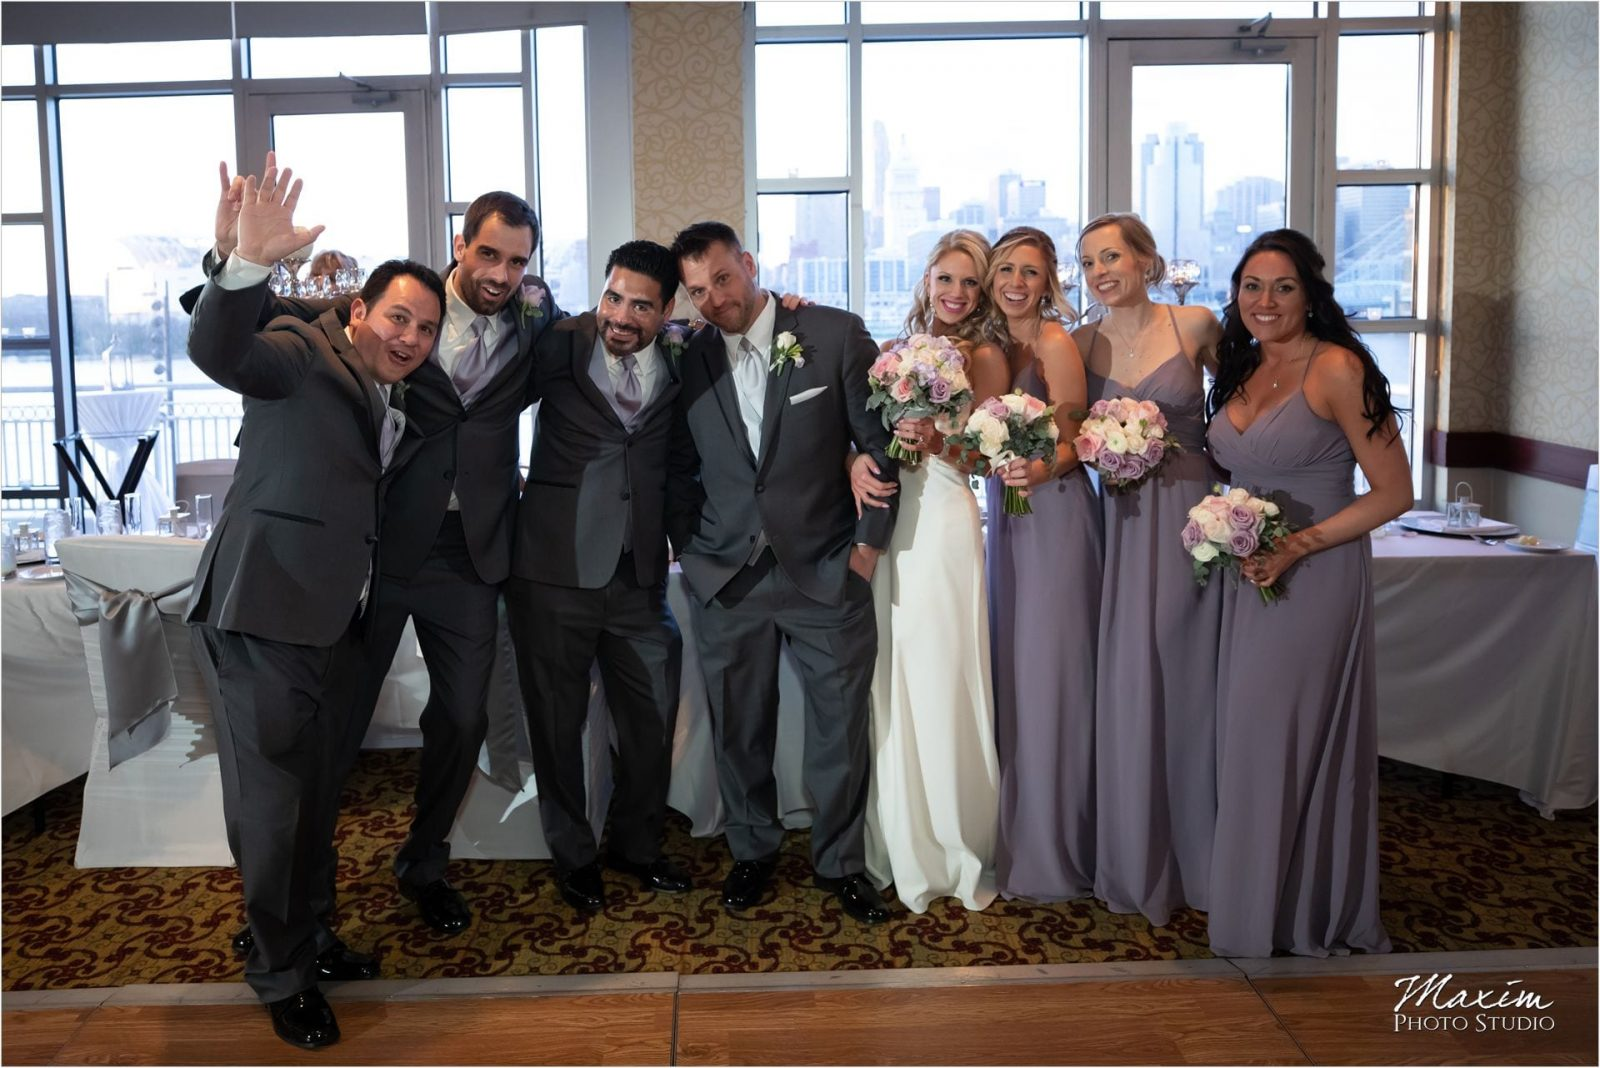 Cincinnati Marriott Rivercenter, Covington Wedding, Cincinnati skyline, Wedding Reception, Bridal Party